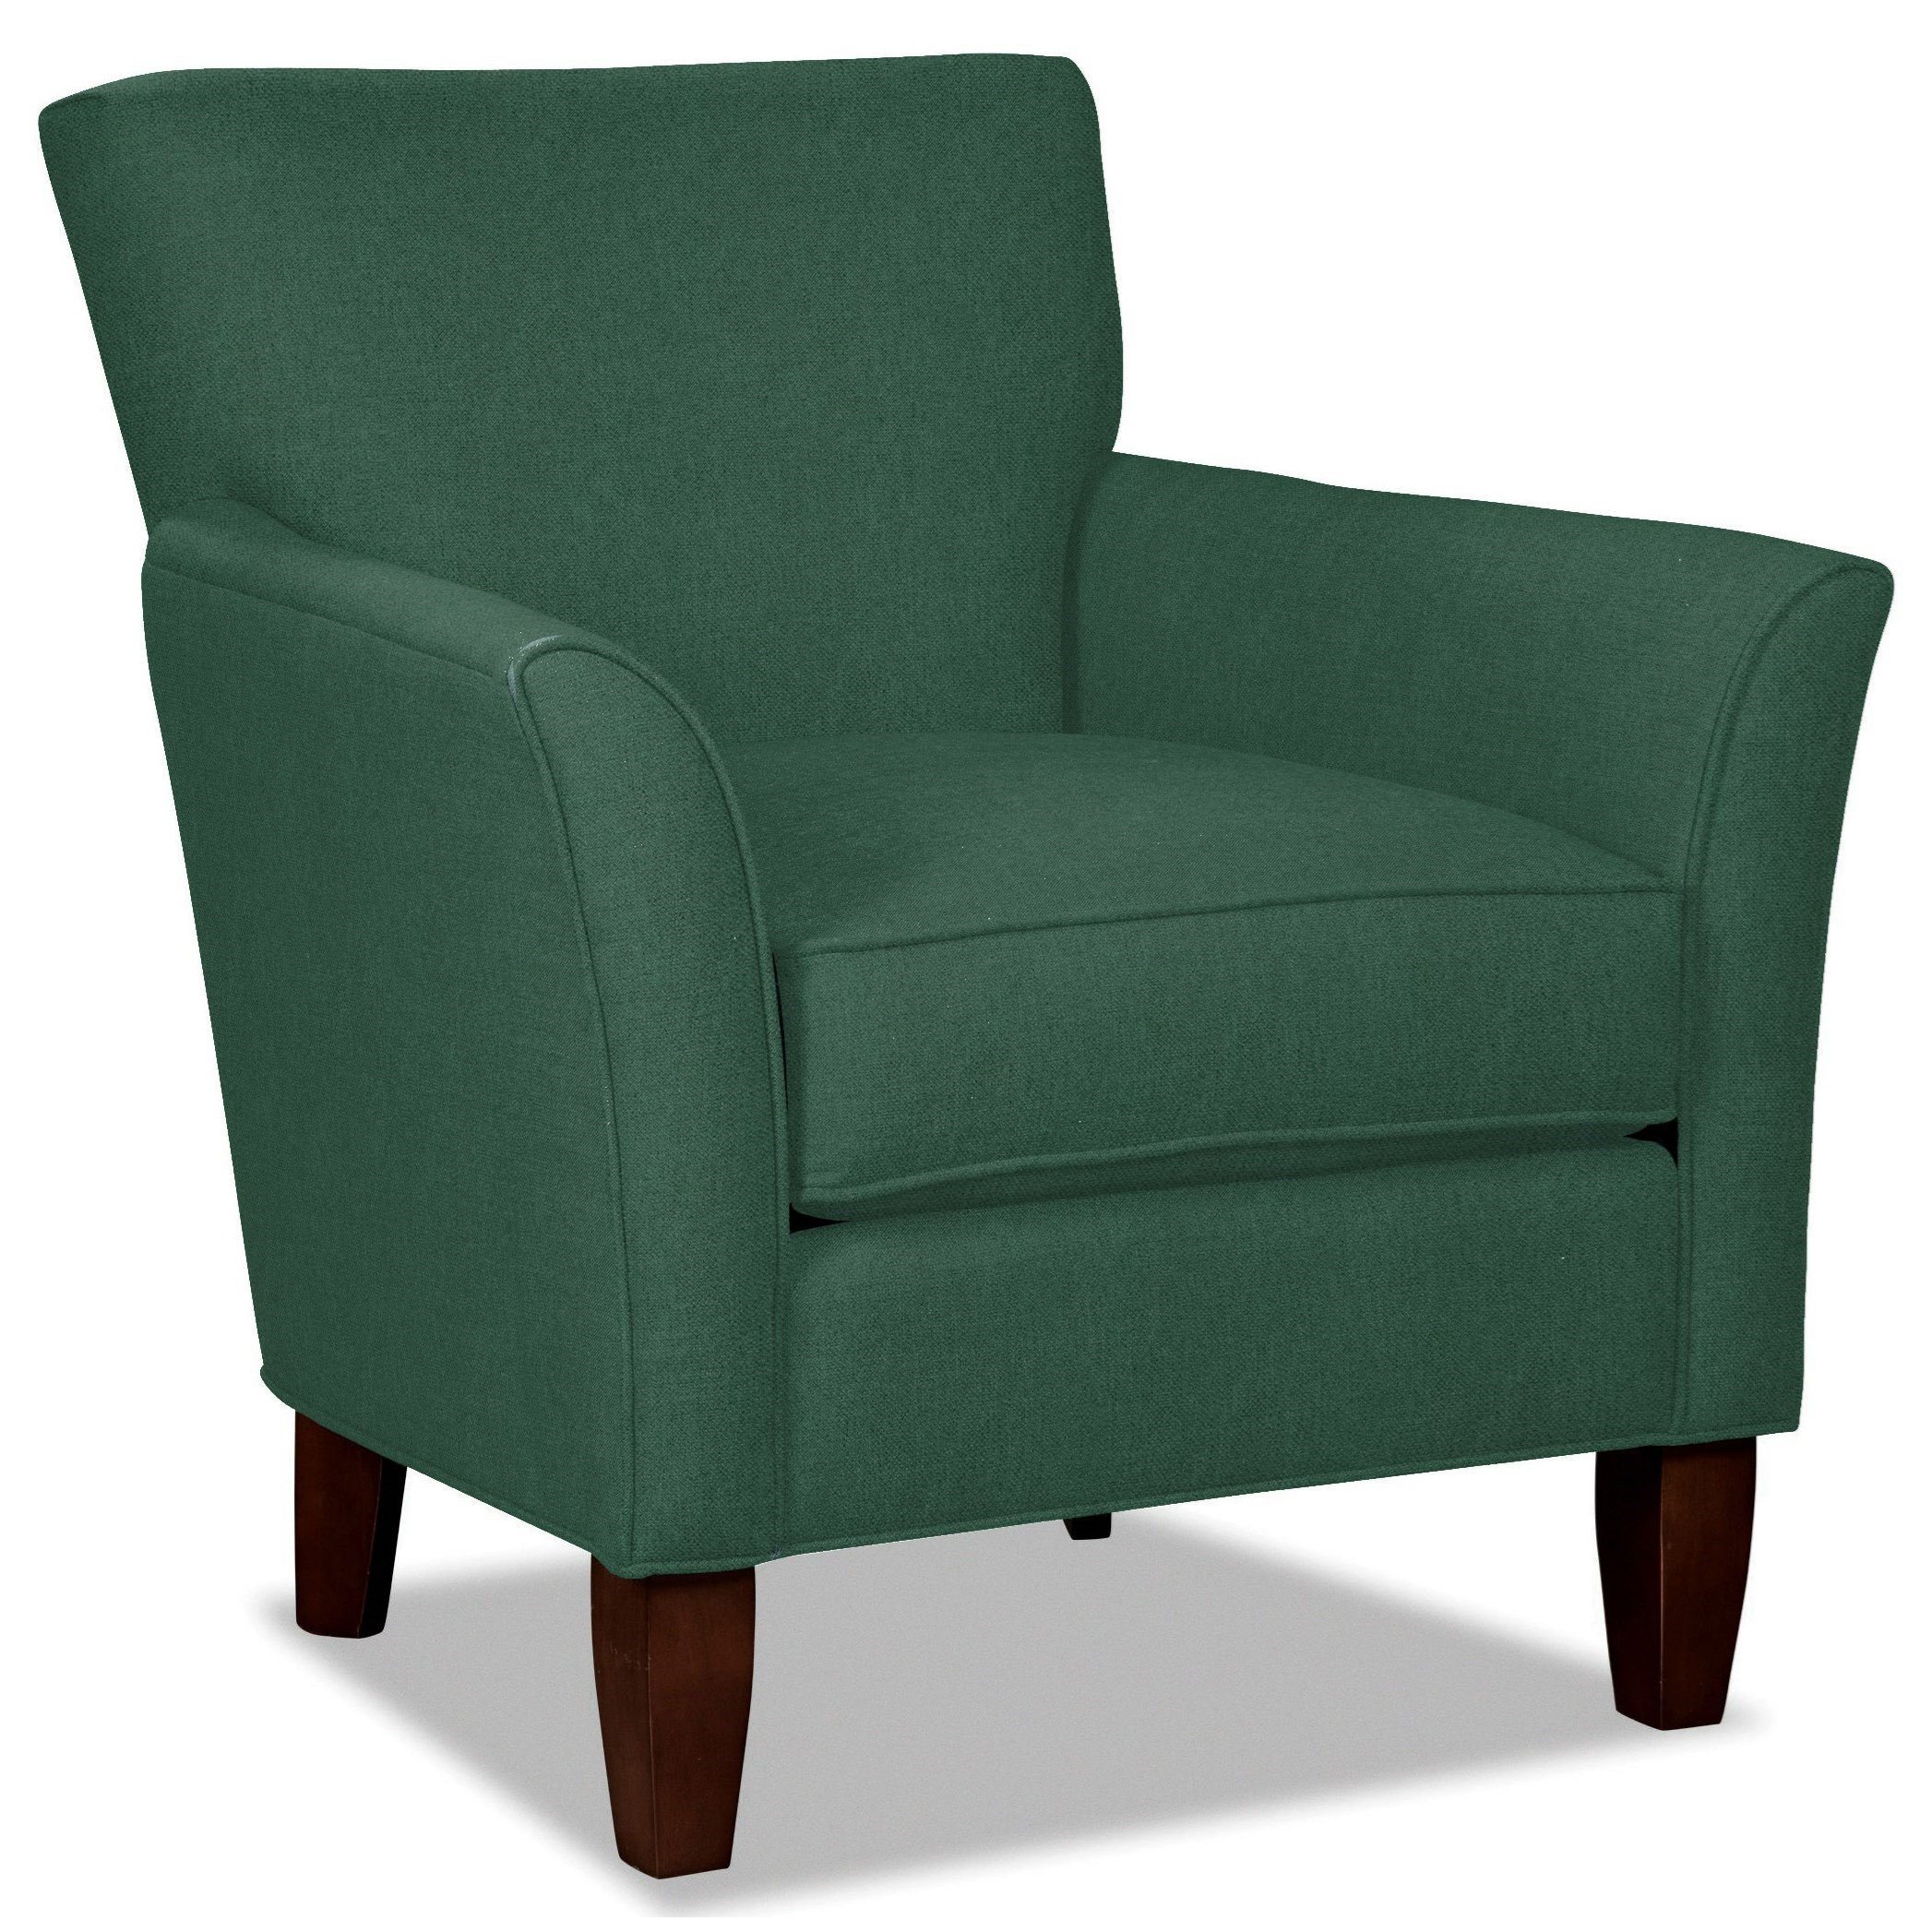 Craftmaster 060110 Accent Chair - Item Number: 060110-CYCLE-22